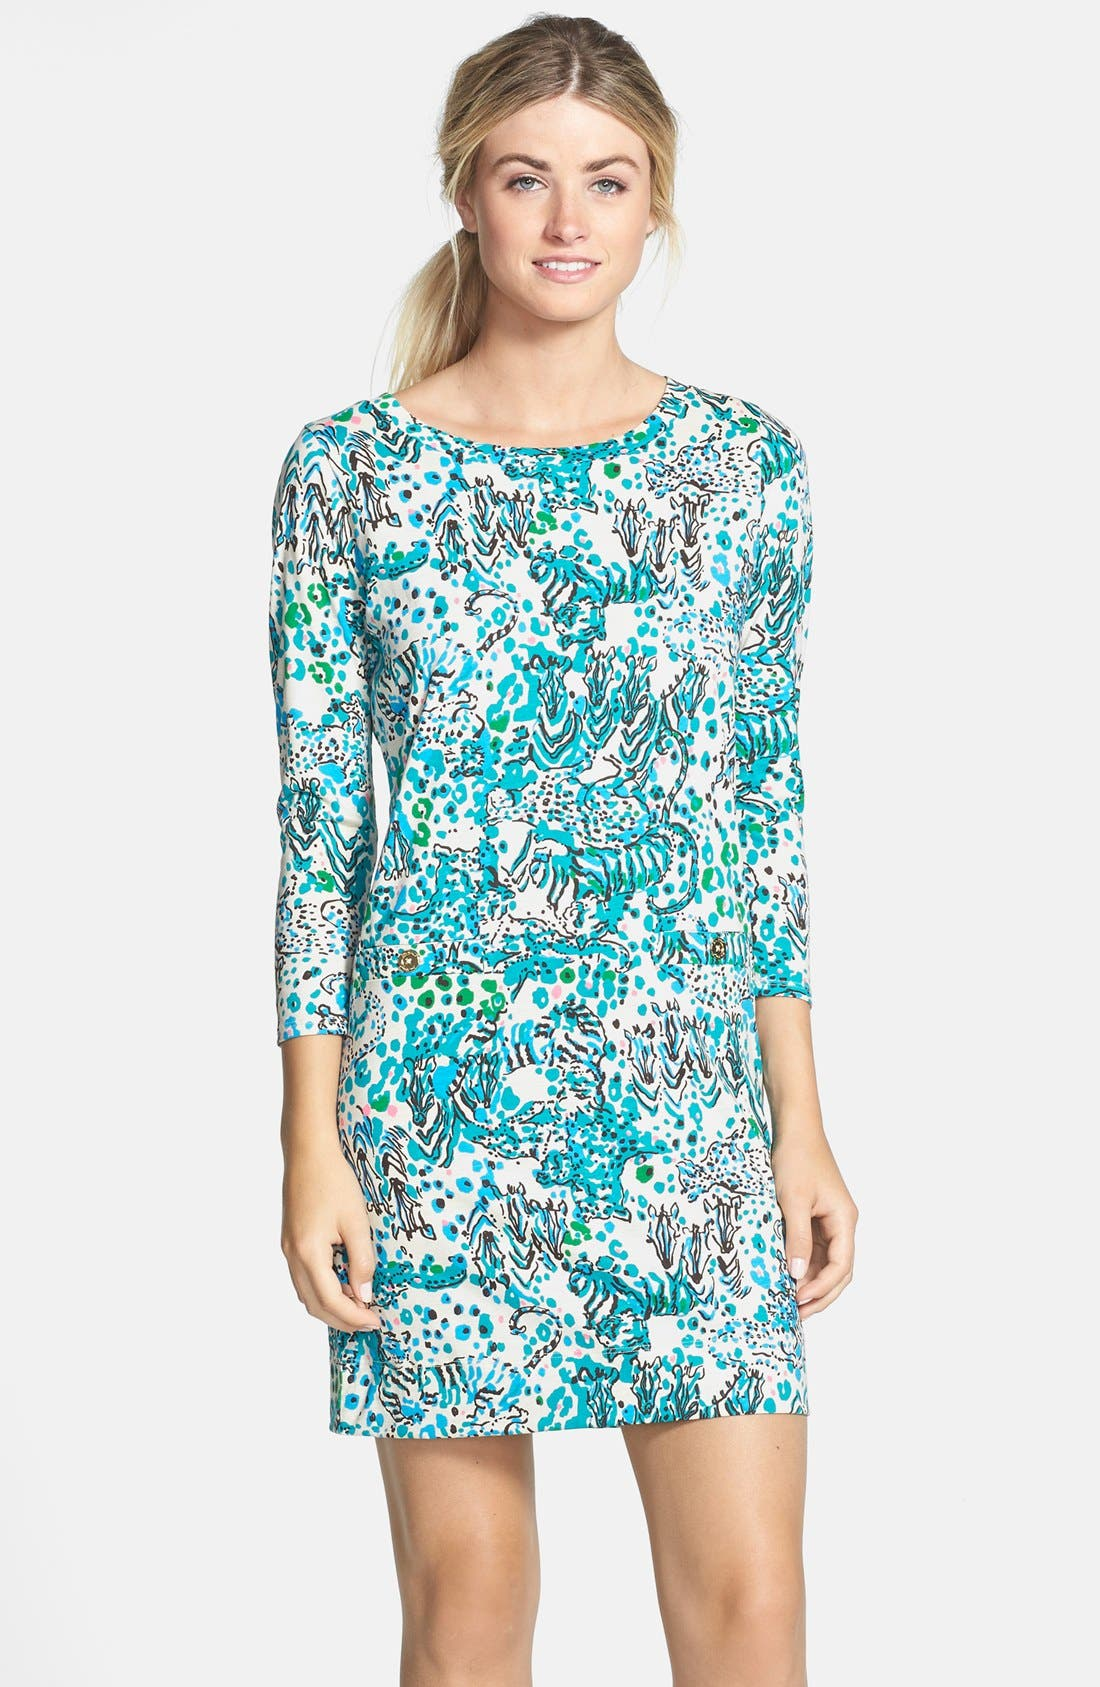 Alternate Image 1 Selected - Lilly Pulitzer® 'Corine' Print Pima Cotton Shift Dress